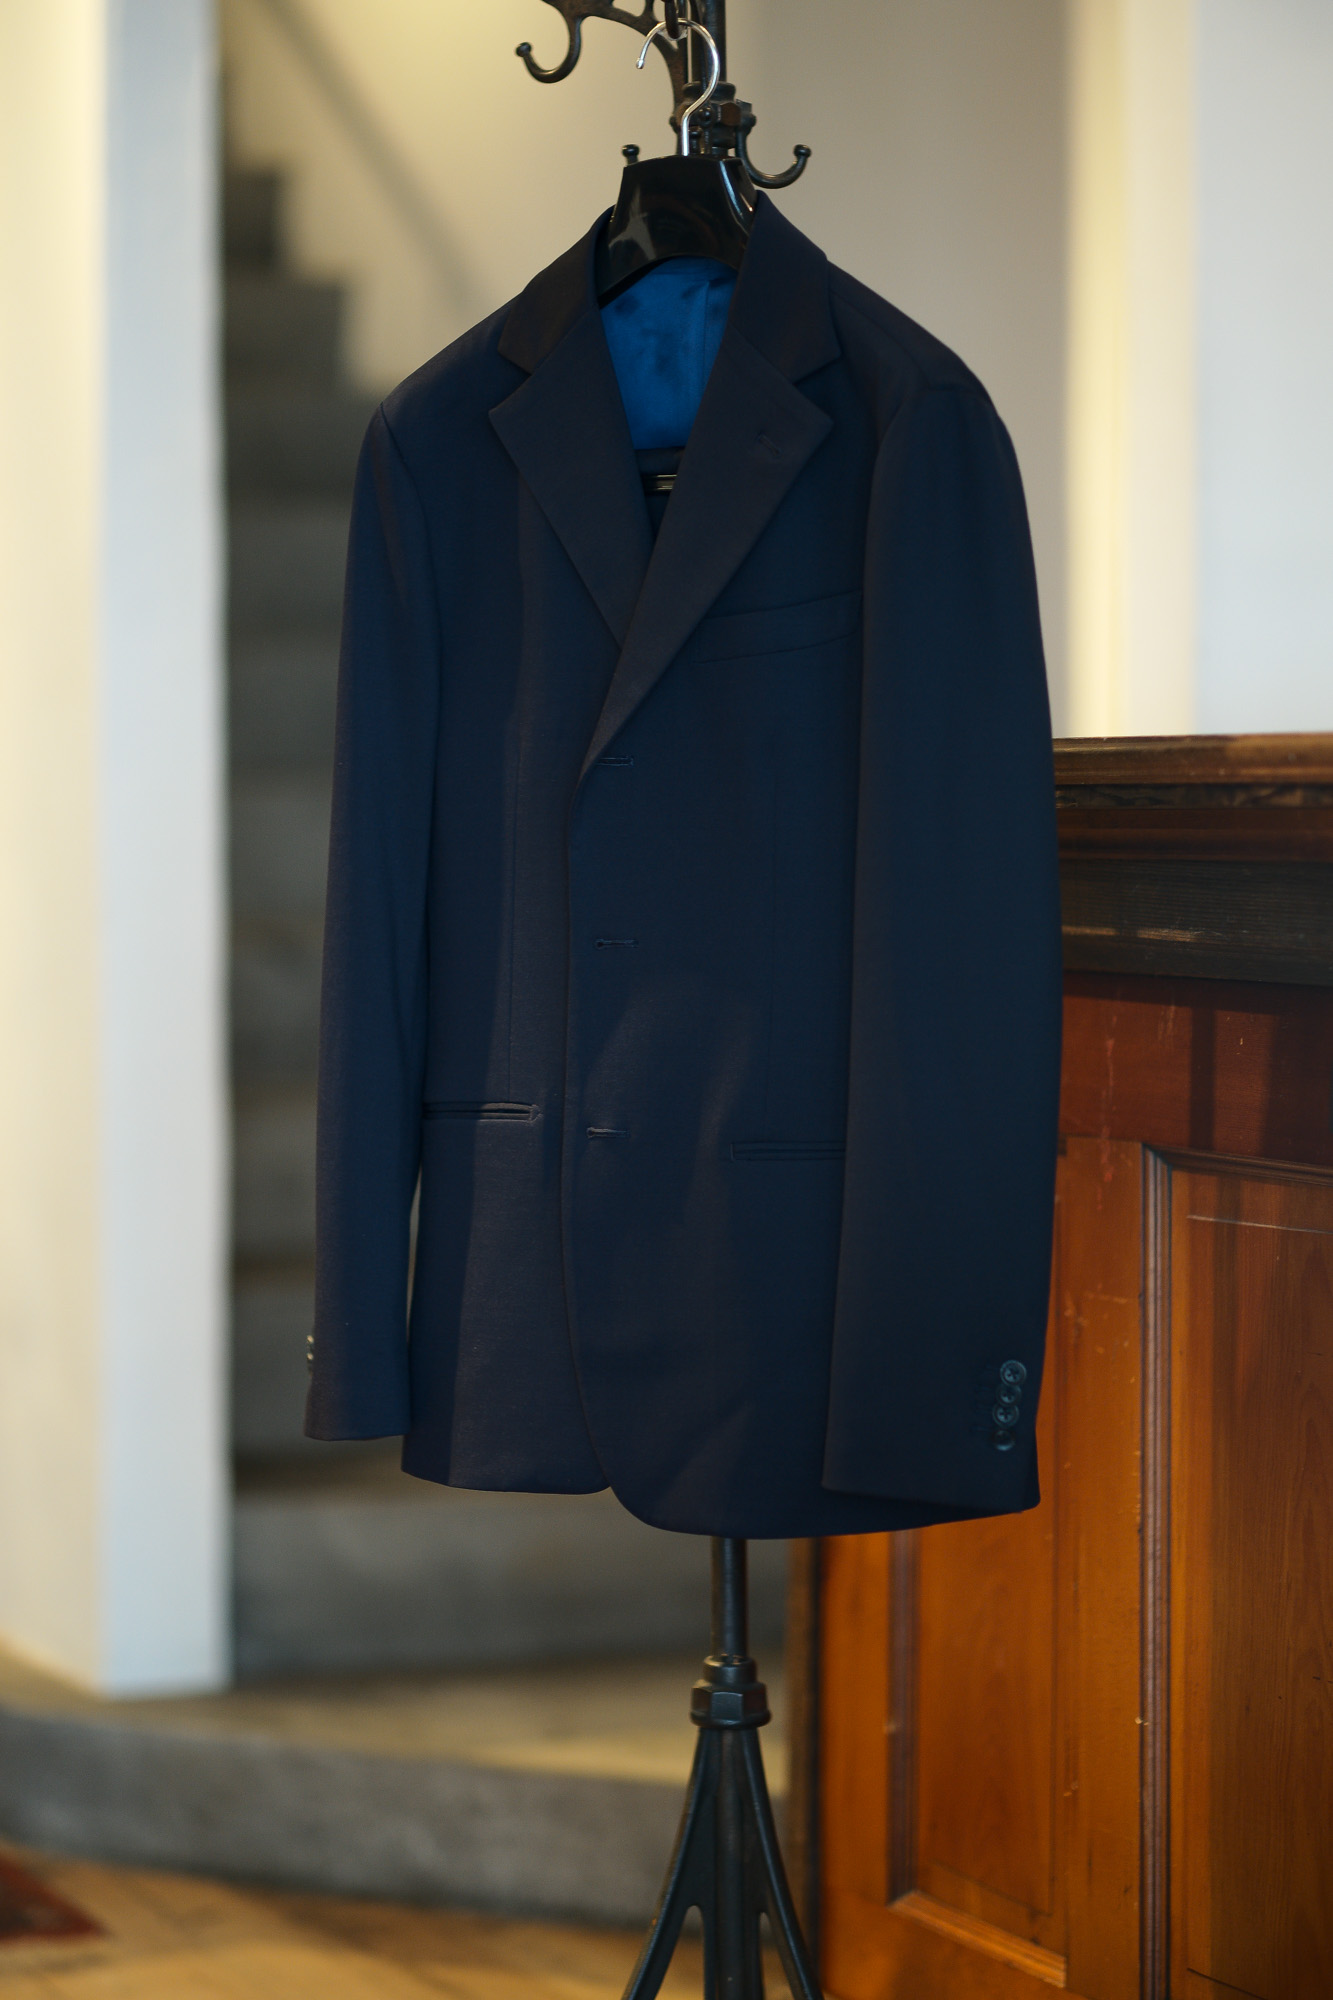 Cuervo (クエルボ) Sartoria Collection (サルトリア コレクション) Rooster (ルースター) Stretch Jersey  ストレッチ ジャージ スーツ NAVY (ネイビー) MADE IN JAPAN (日本製) 2019 秋冬【オーダー分入荷】愛知 名古屋 alto e diritto アルトエデリット